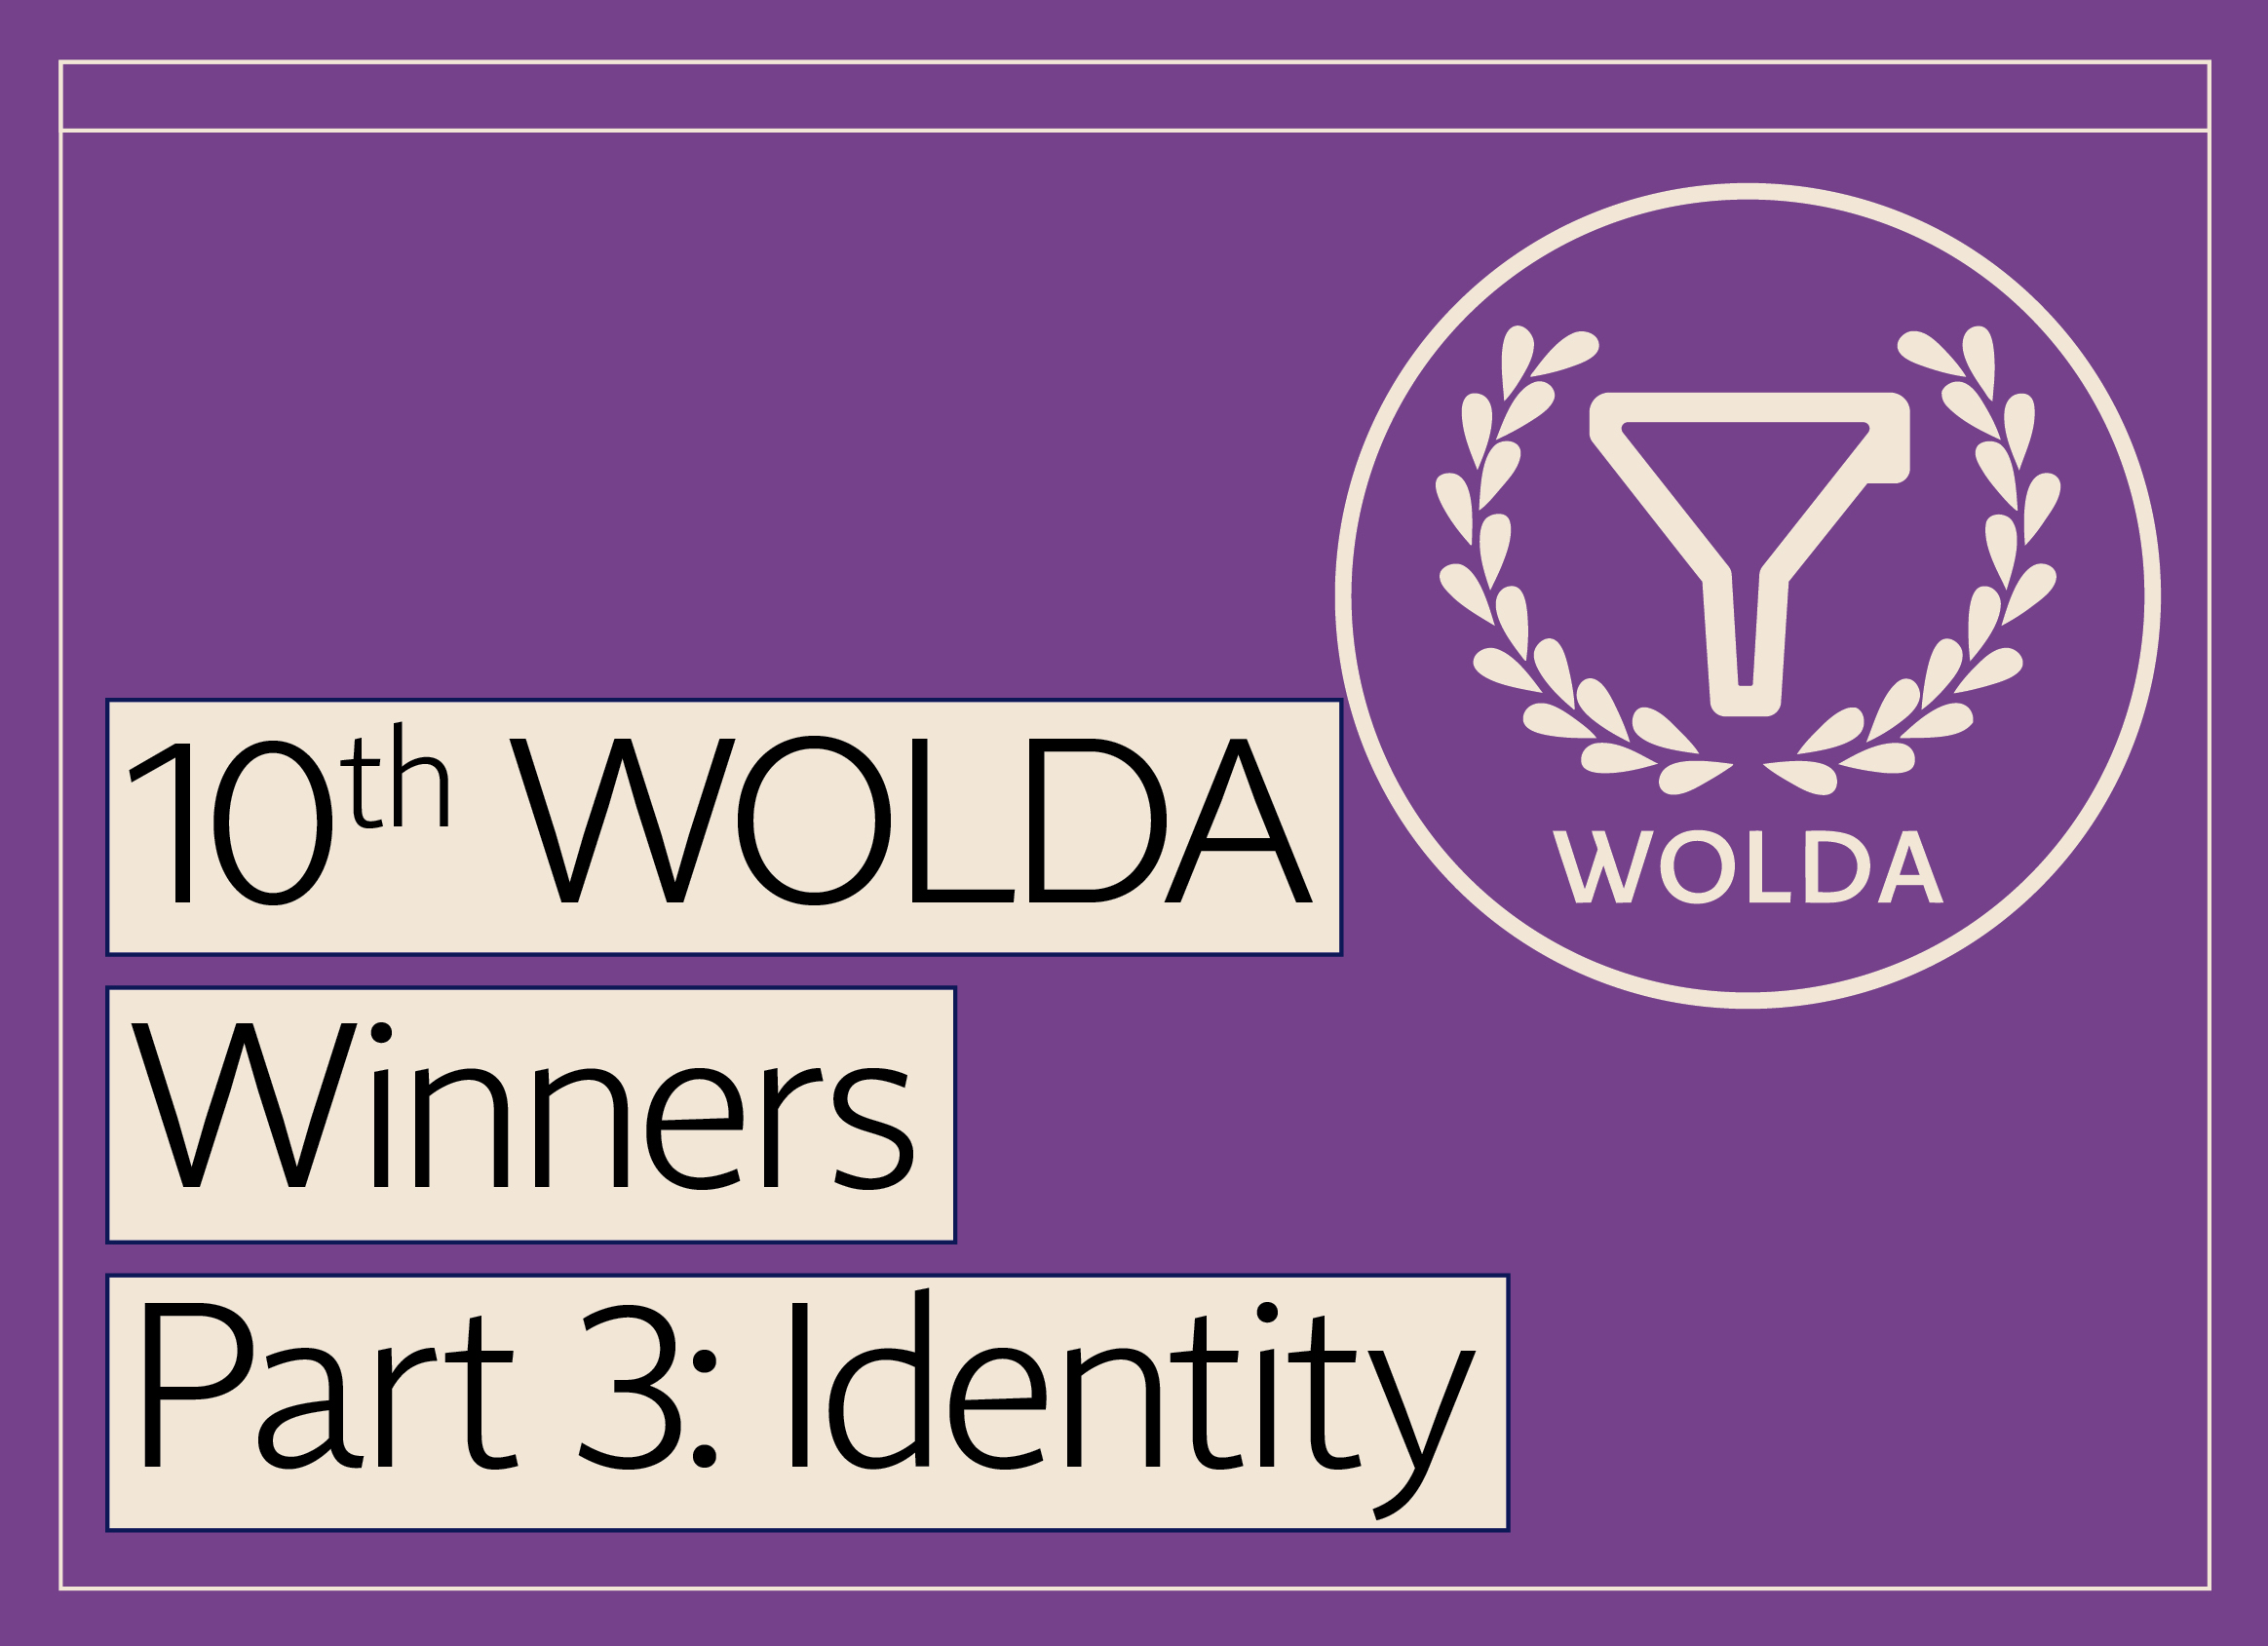 10th WOLDA Winners Part 3